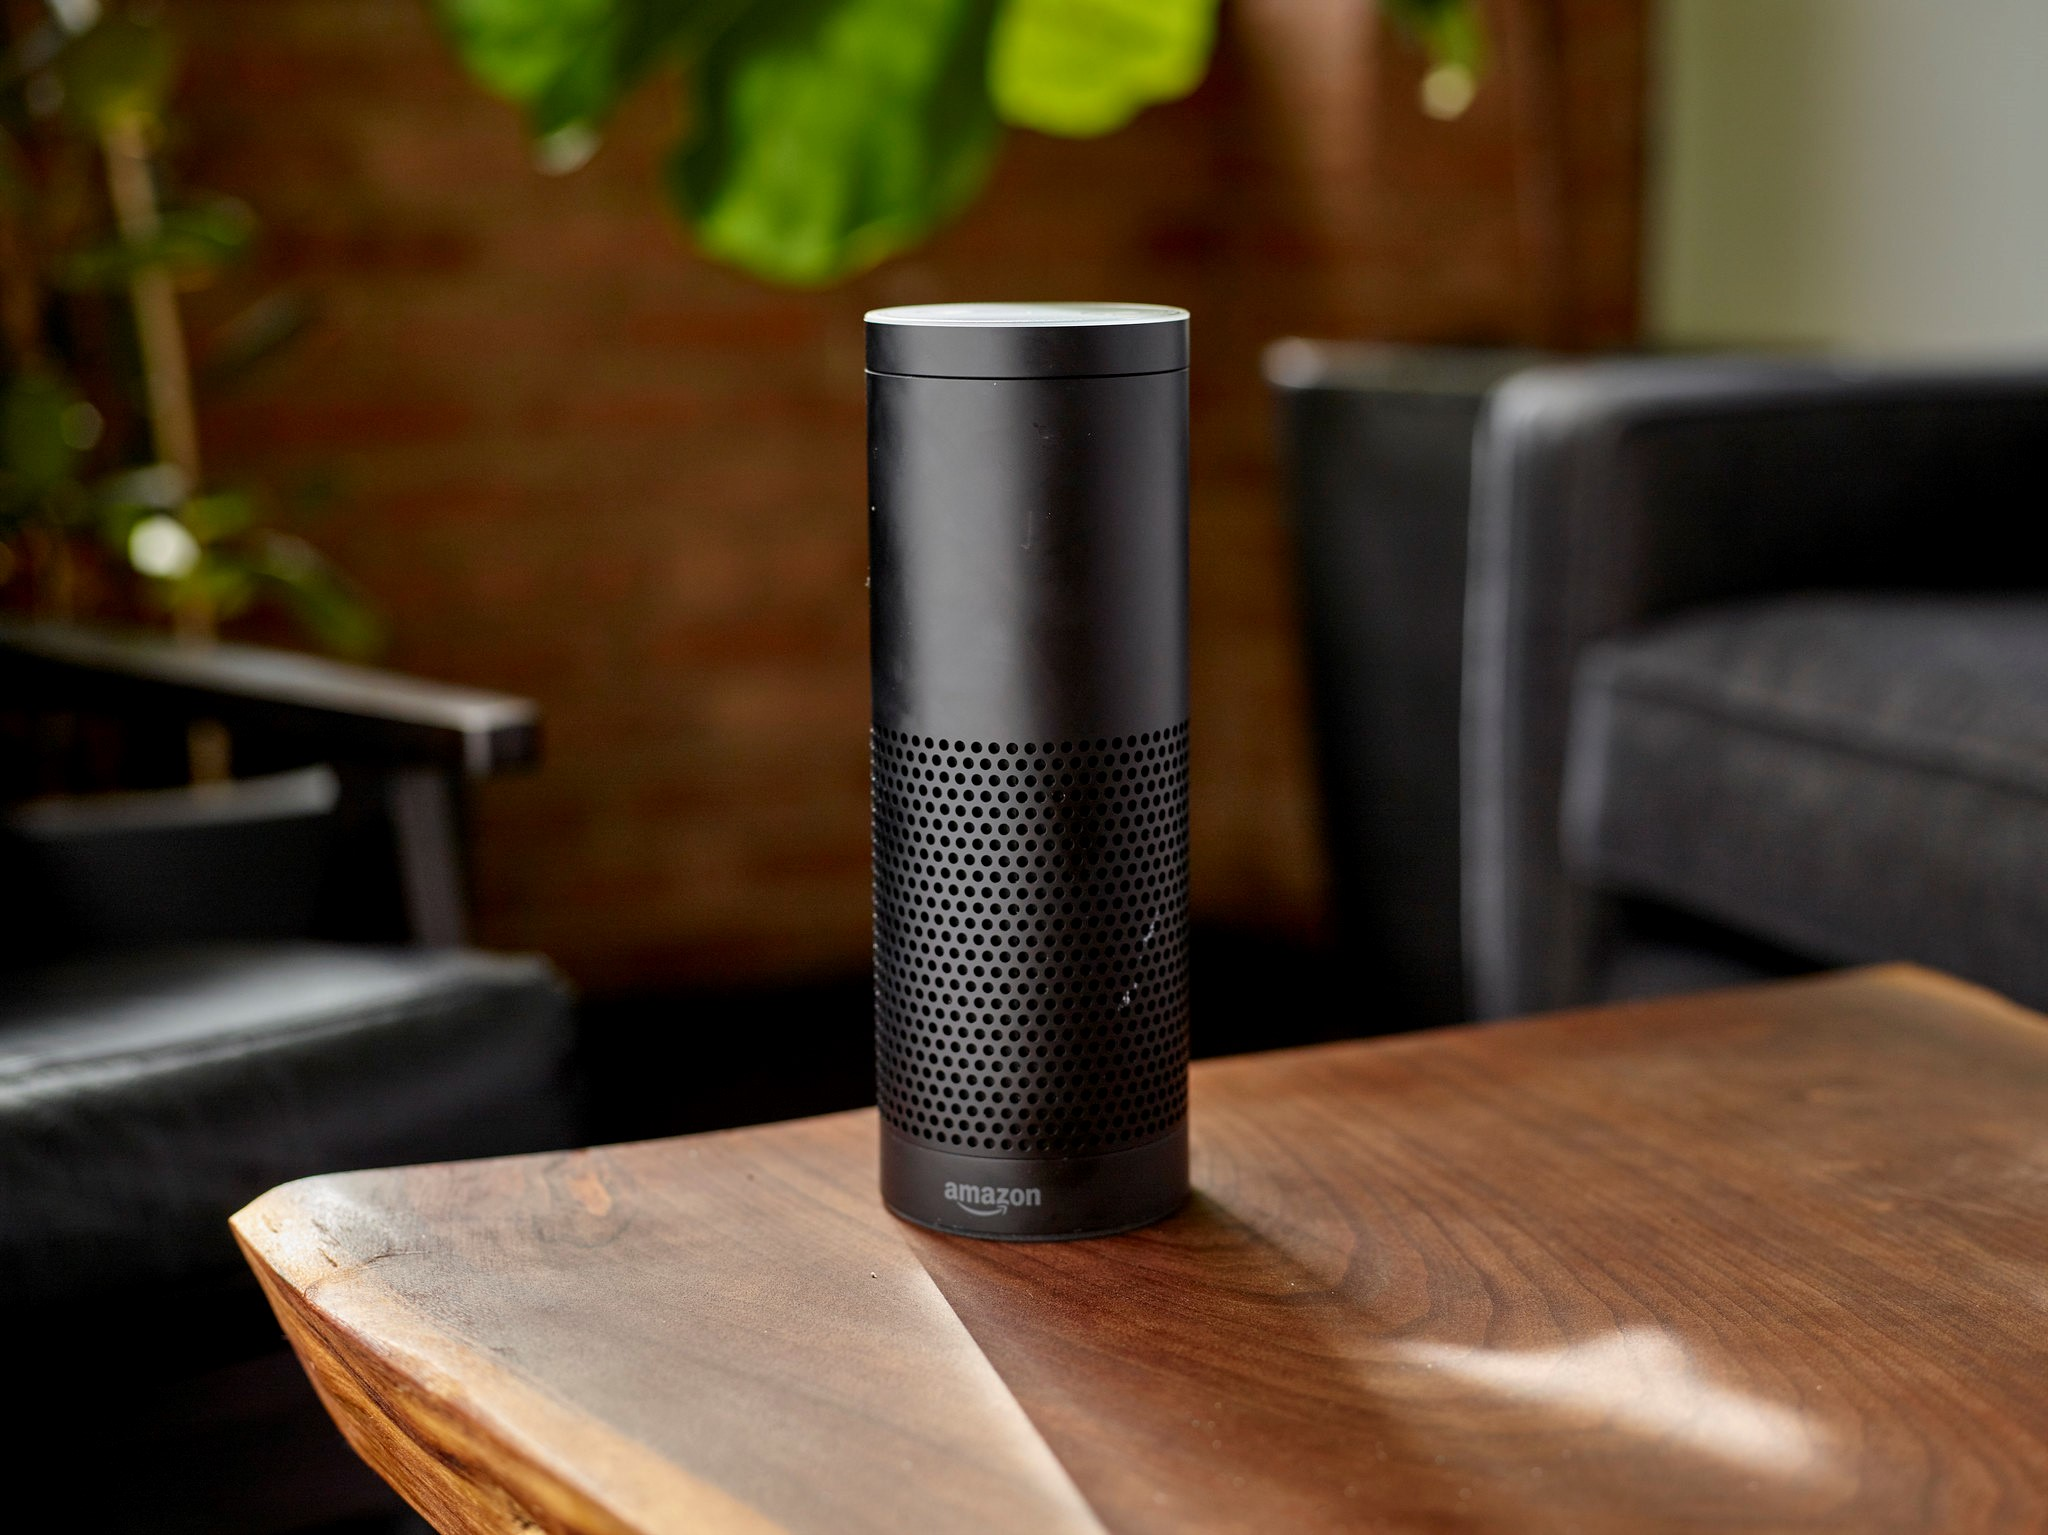 Amazon speaker standing on wooden table